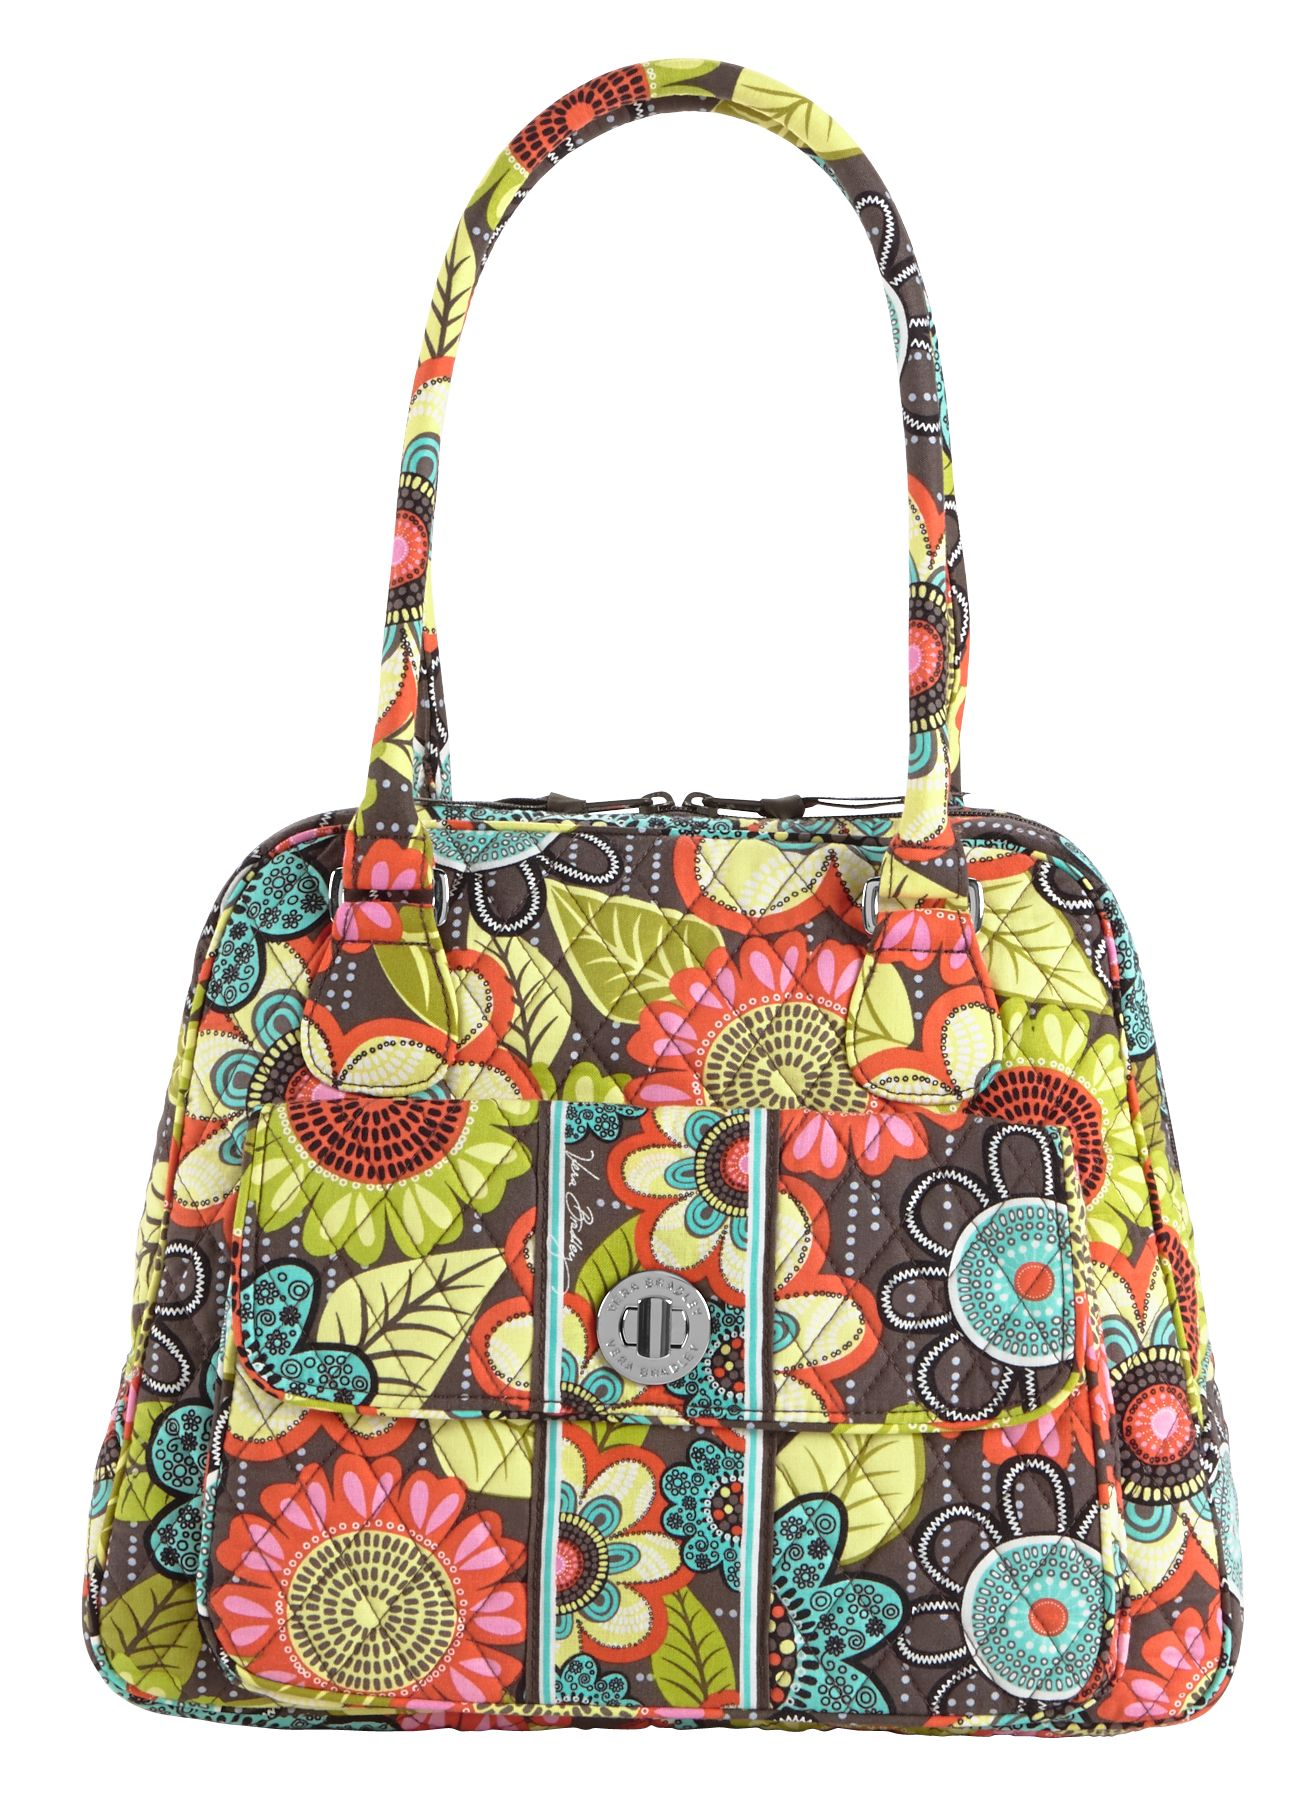 Vera Bradley Turn Lock Satchel in Flower Shower